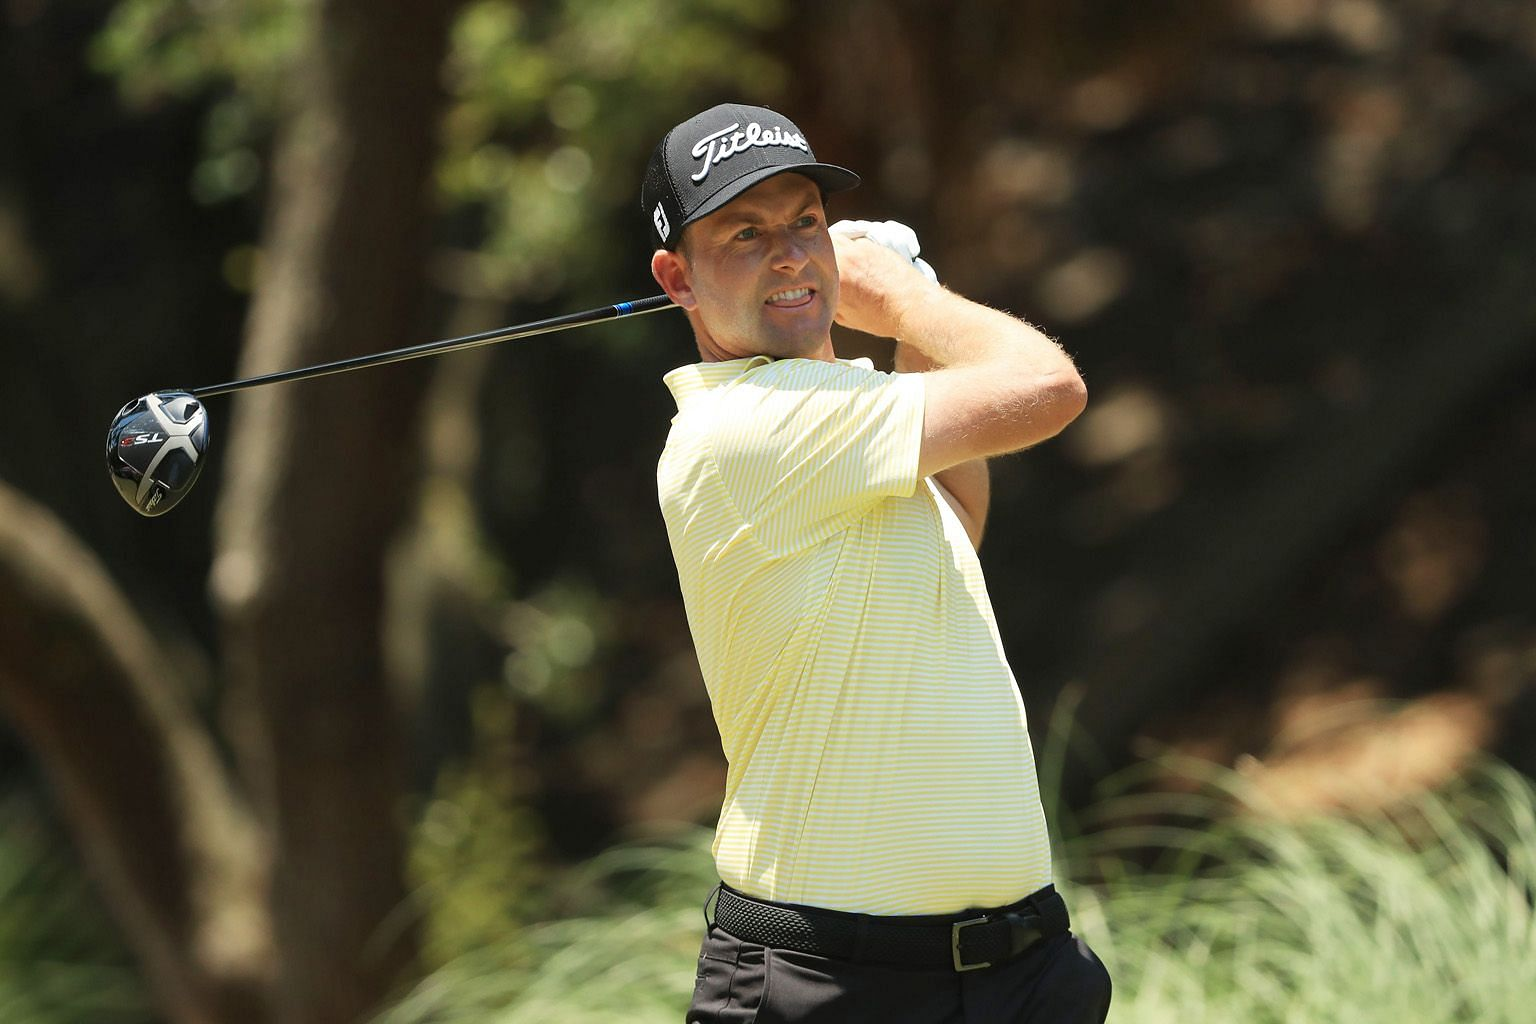 Webb Simpson playing his shot from the second tee in the final round of the RBC Heritage on Sunday at Harbour Town Golf Links. He came from behind on the back nine and made five birdies over his final seven holes to win by a stroke. PHOTO: AGENCE FRA